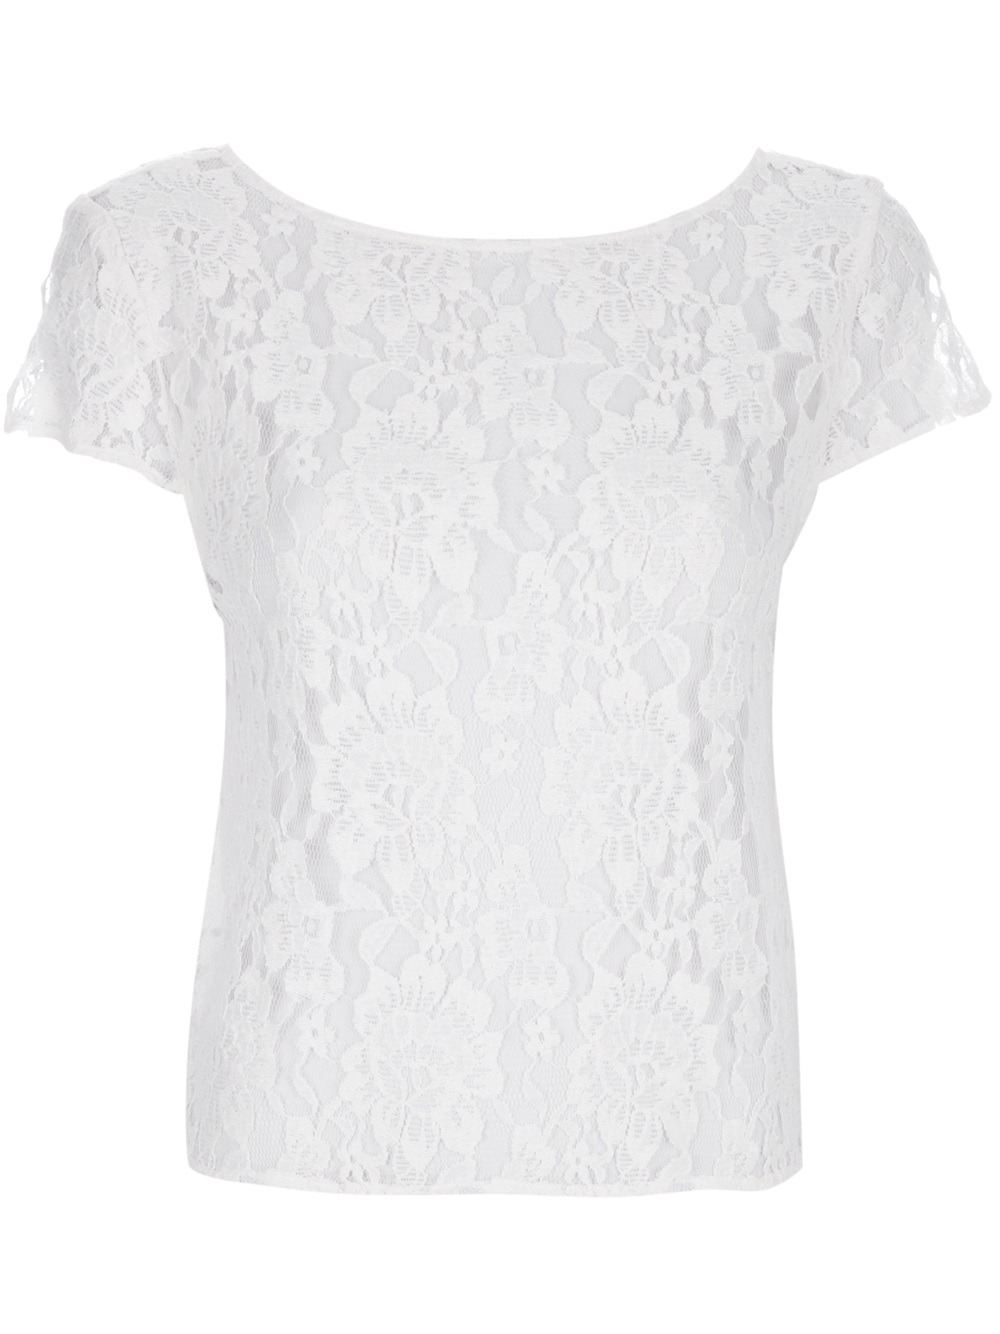 alice olivia lace t shirt in white lyst